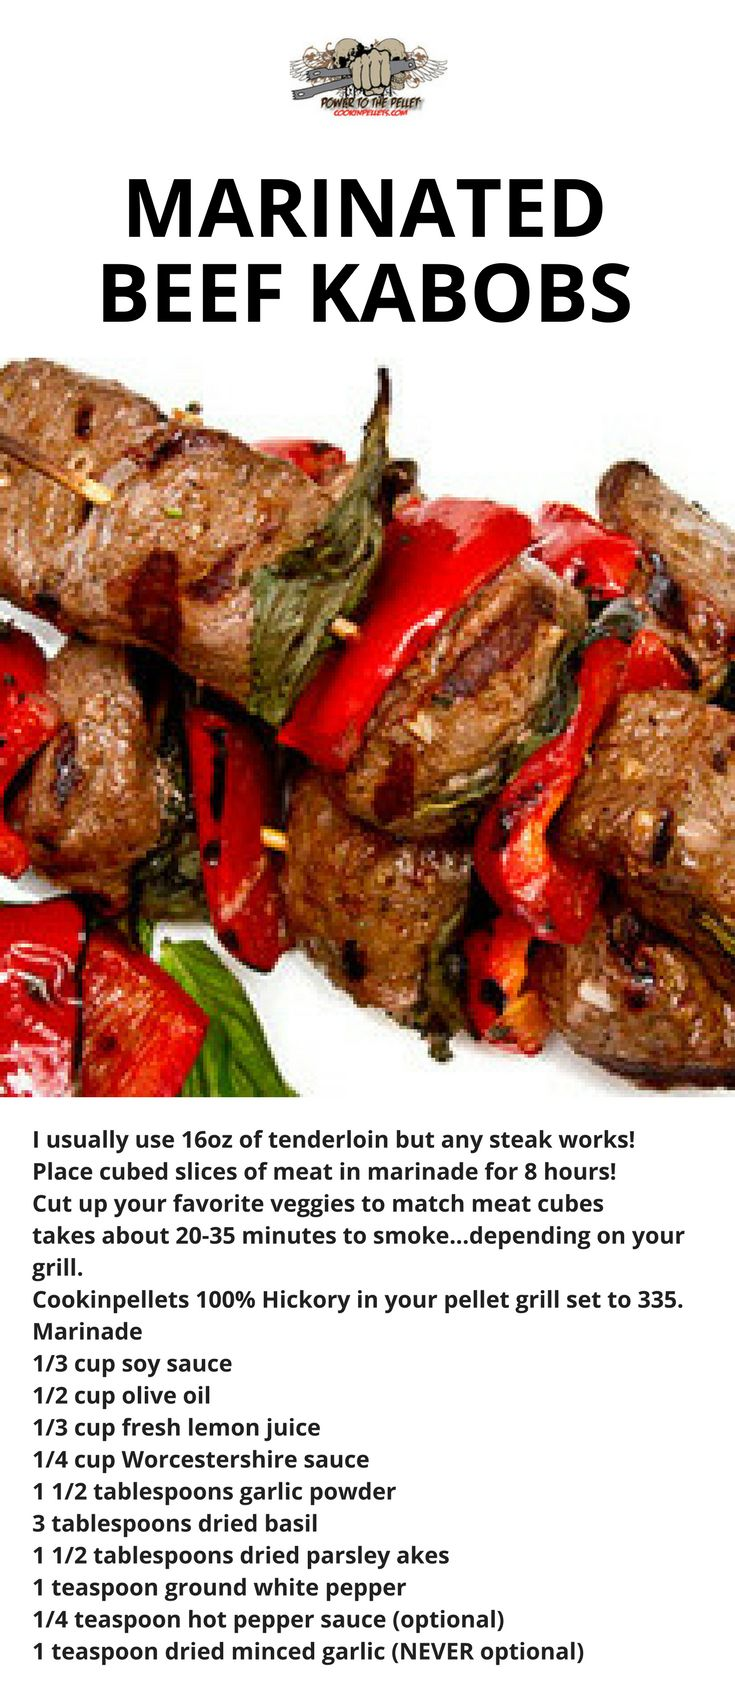 Pellet Grill: Marinated Beef Kabobs. This amazing recipe using our 100% Hickory Cookinpellets makes delicious beef kabobs on your pellet grill. You don't want to miss this pellet grill recipe!  #beef #bbq #grill #pelletgrill #meat